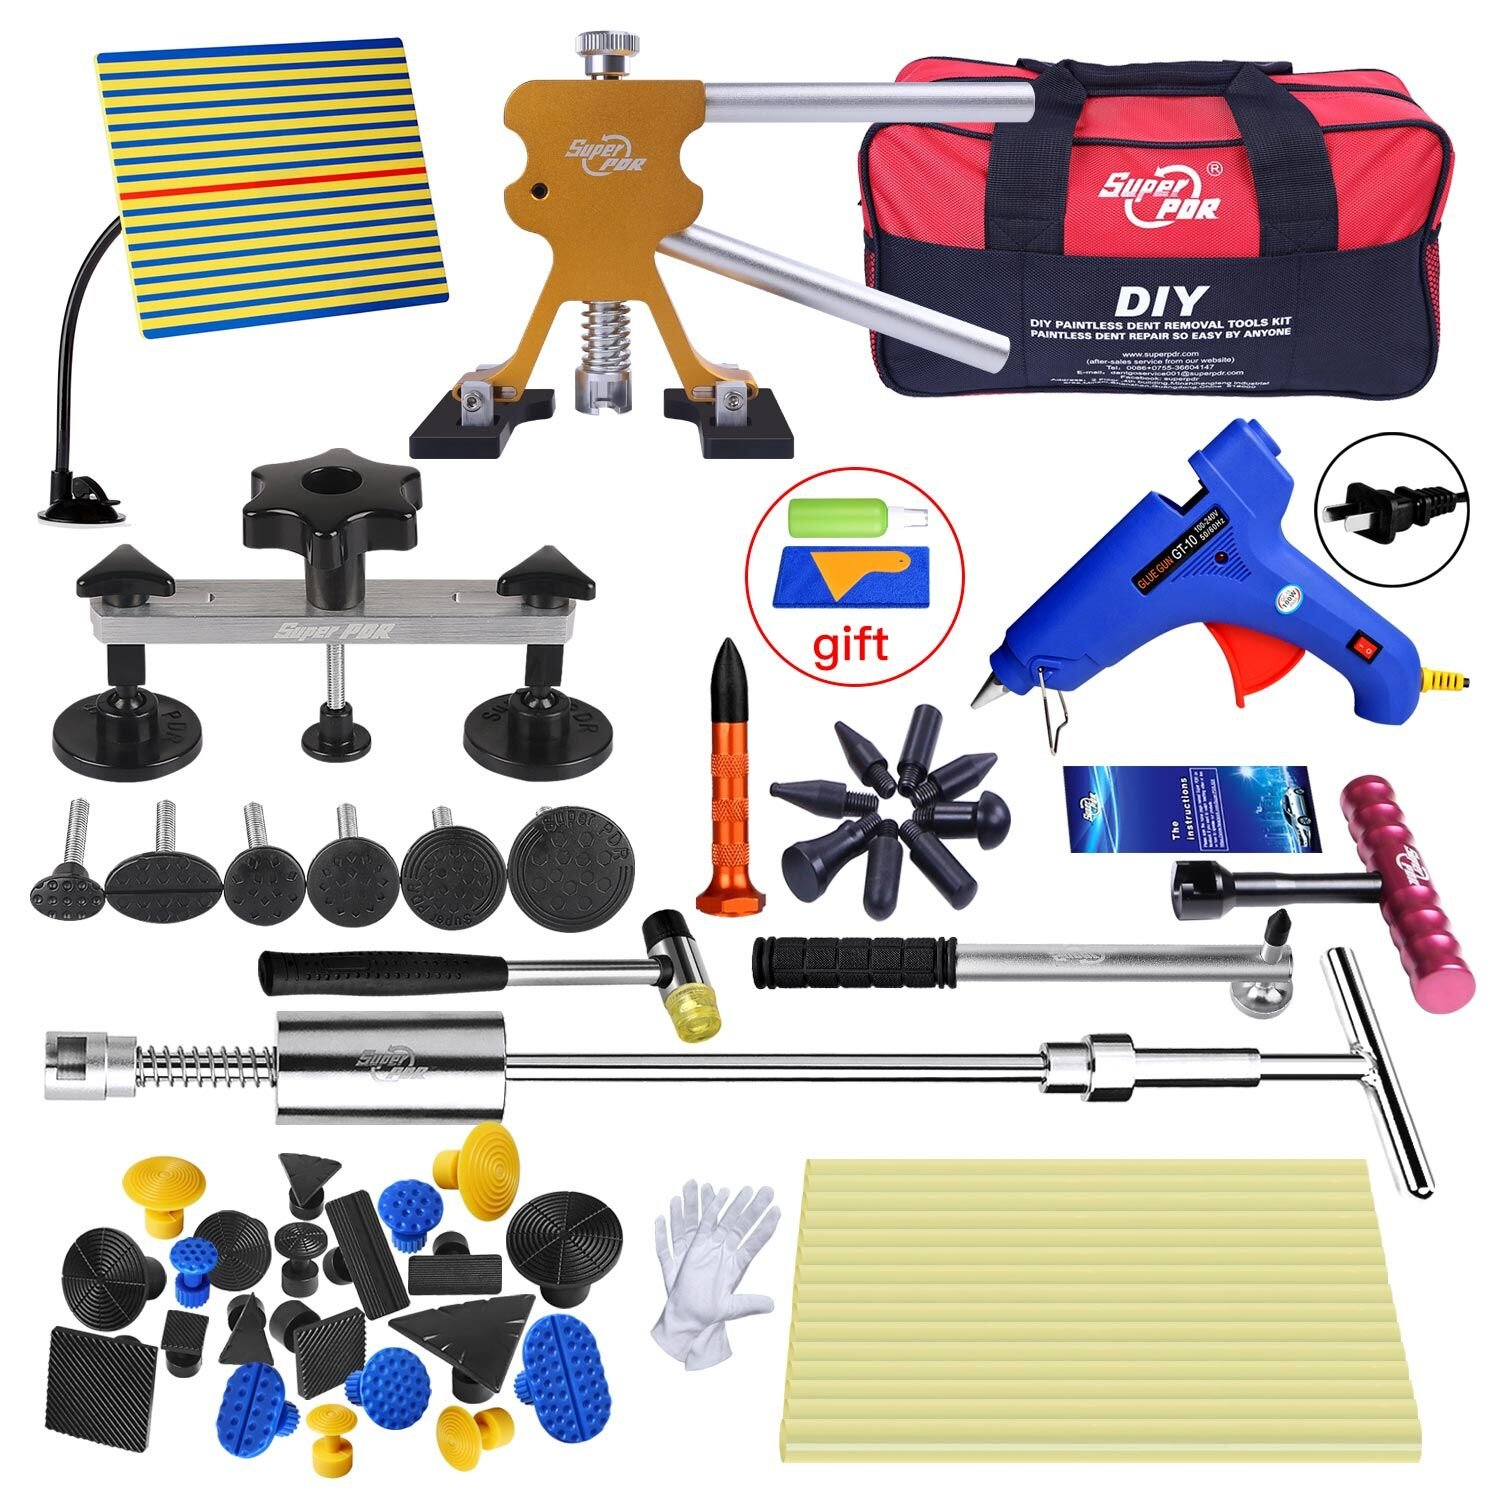 Fly5D Car Repair with Tools Bag Pops a Dent PDR Kit Gold Dent Lifter For Paintless Auto Dent Puller Car Body Auto Dent Removal Remover Tool Kits Equipment